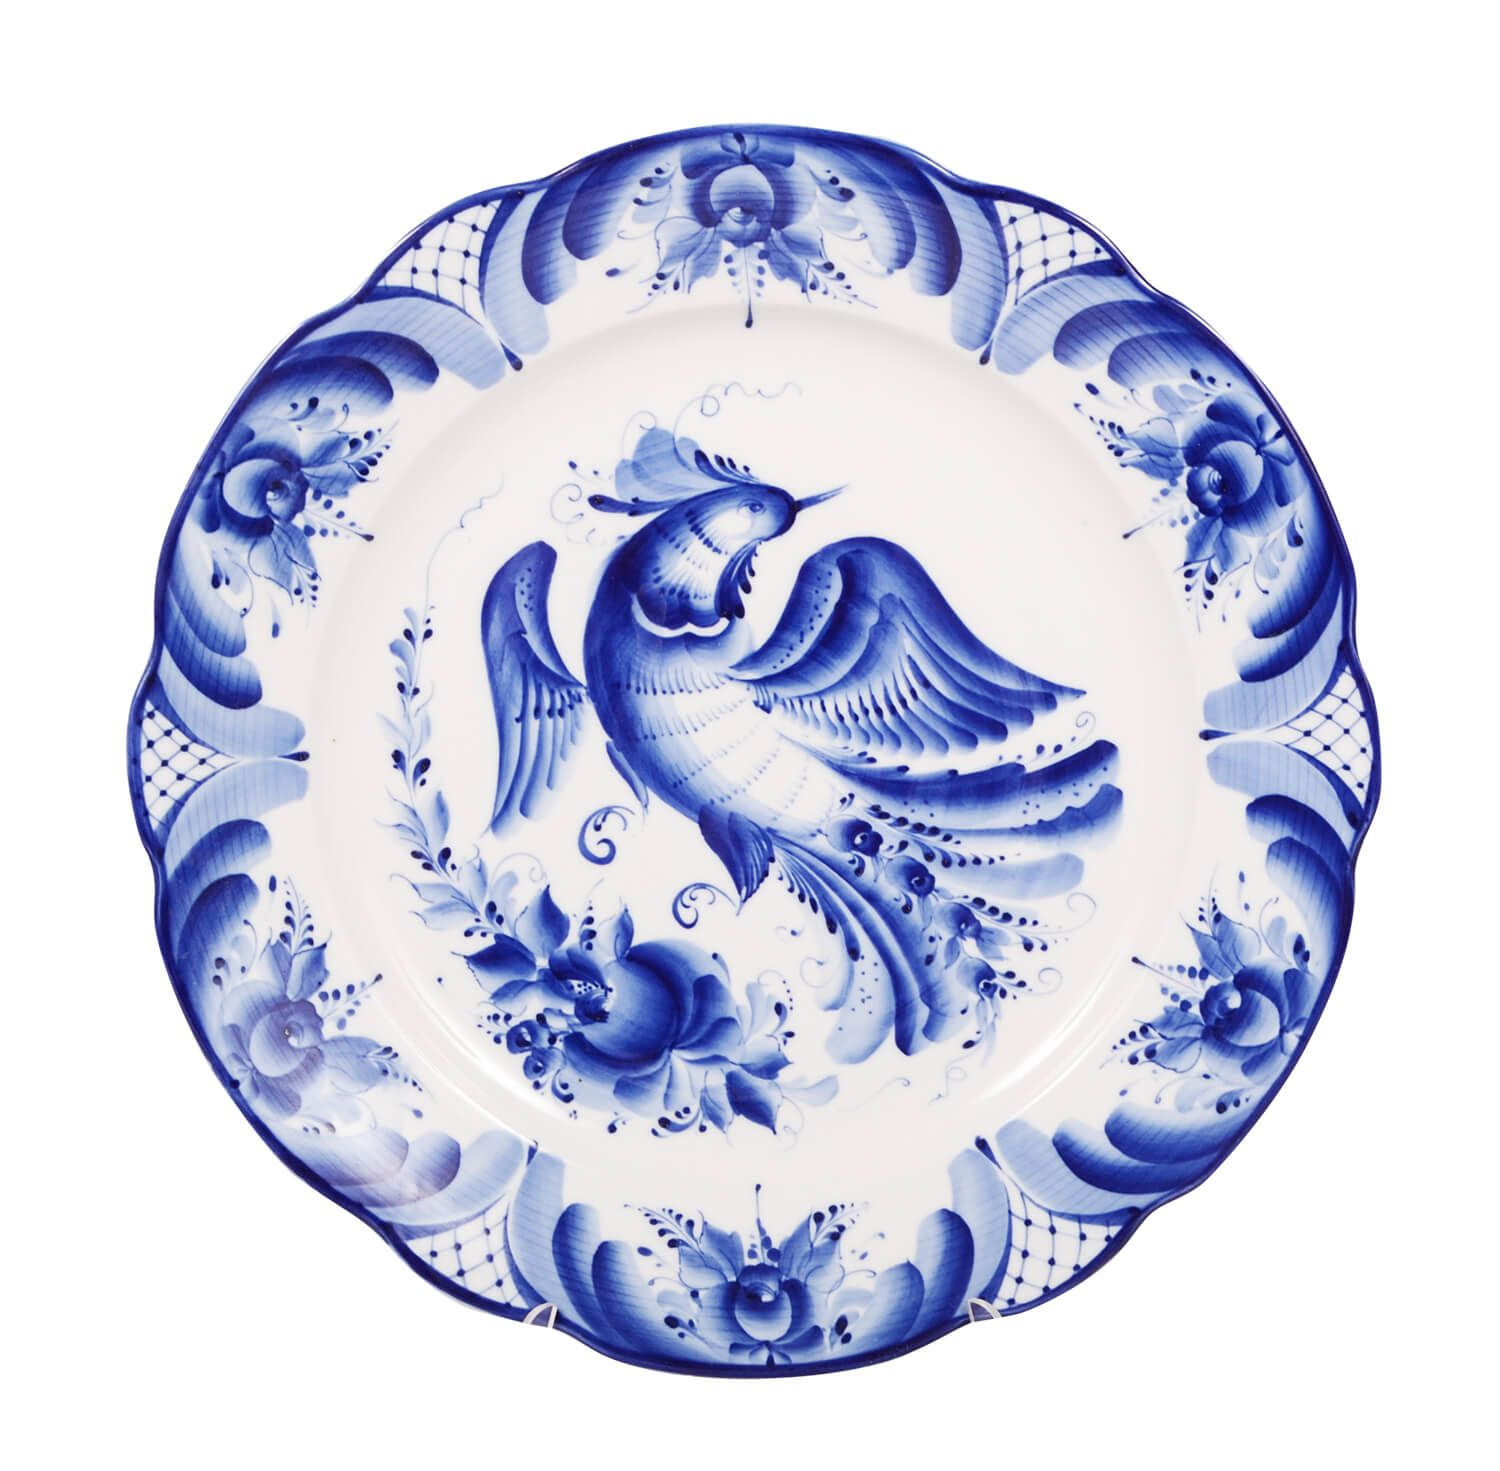 Dulevo porcelain / Round dish Cut-out edge 350 mm Gzhel Bird